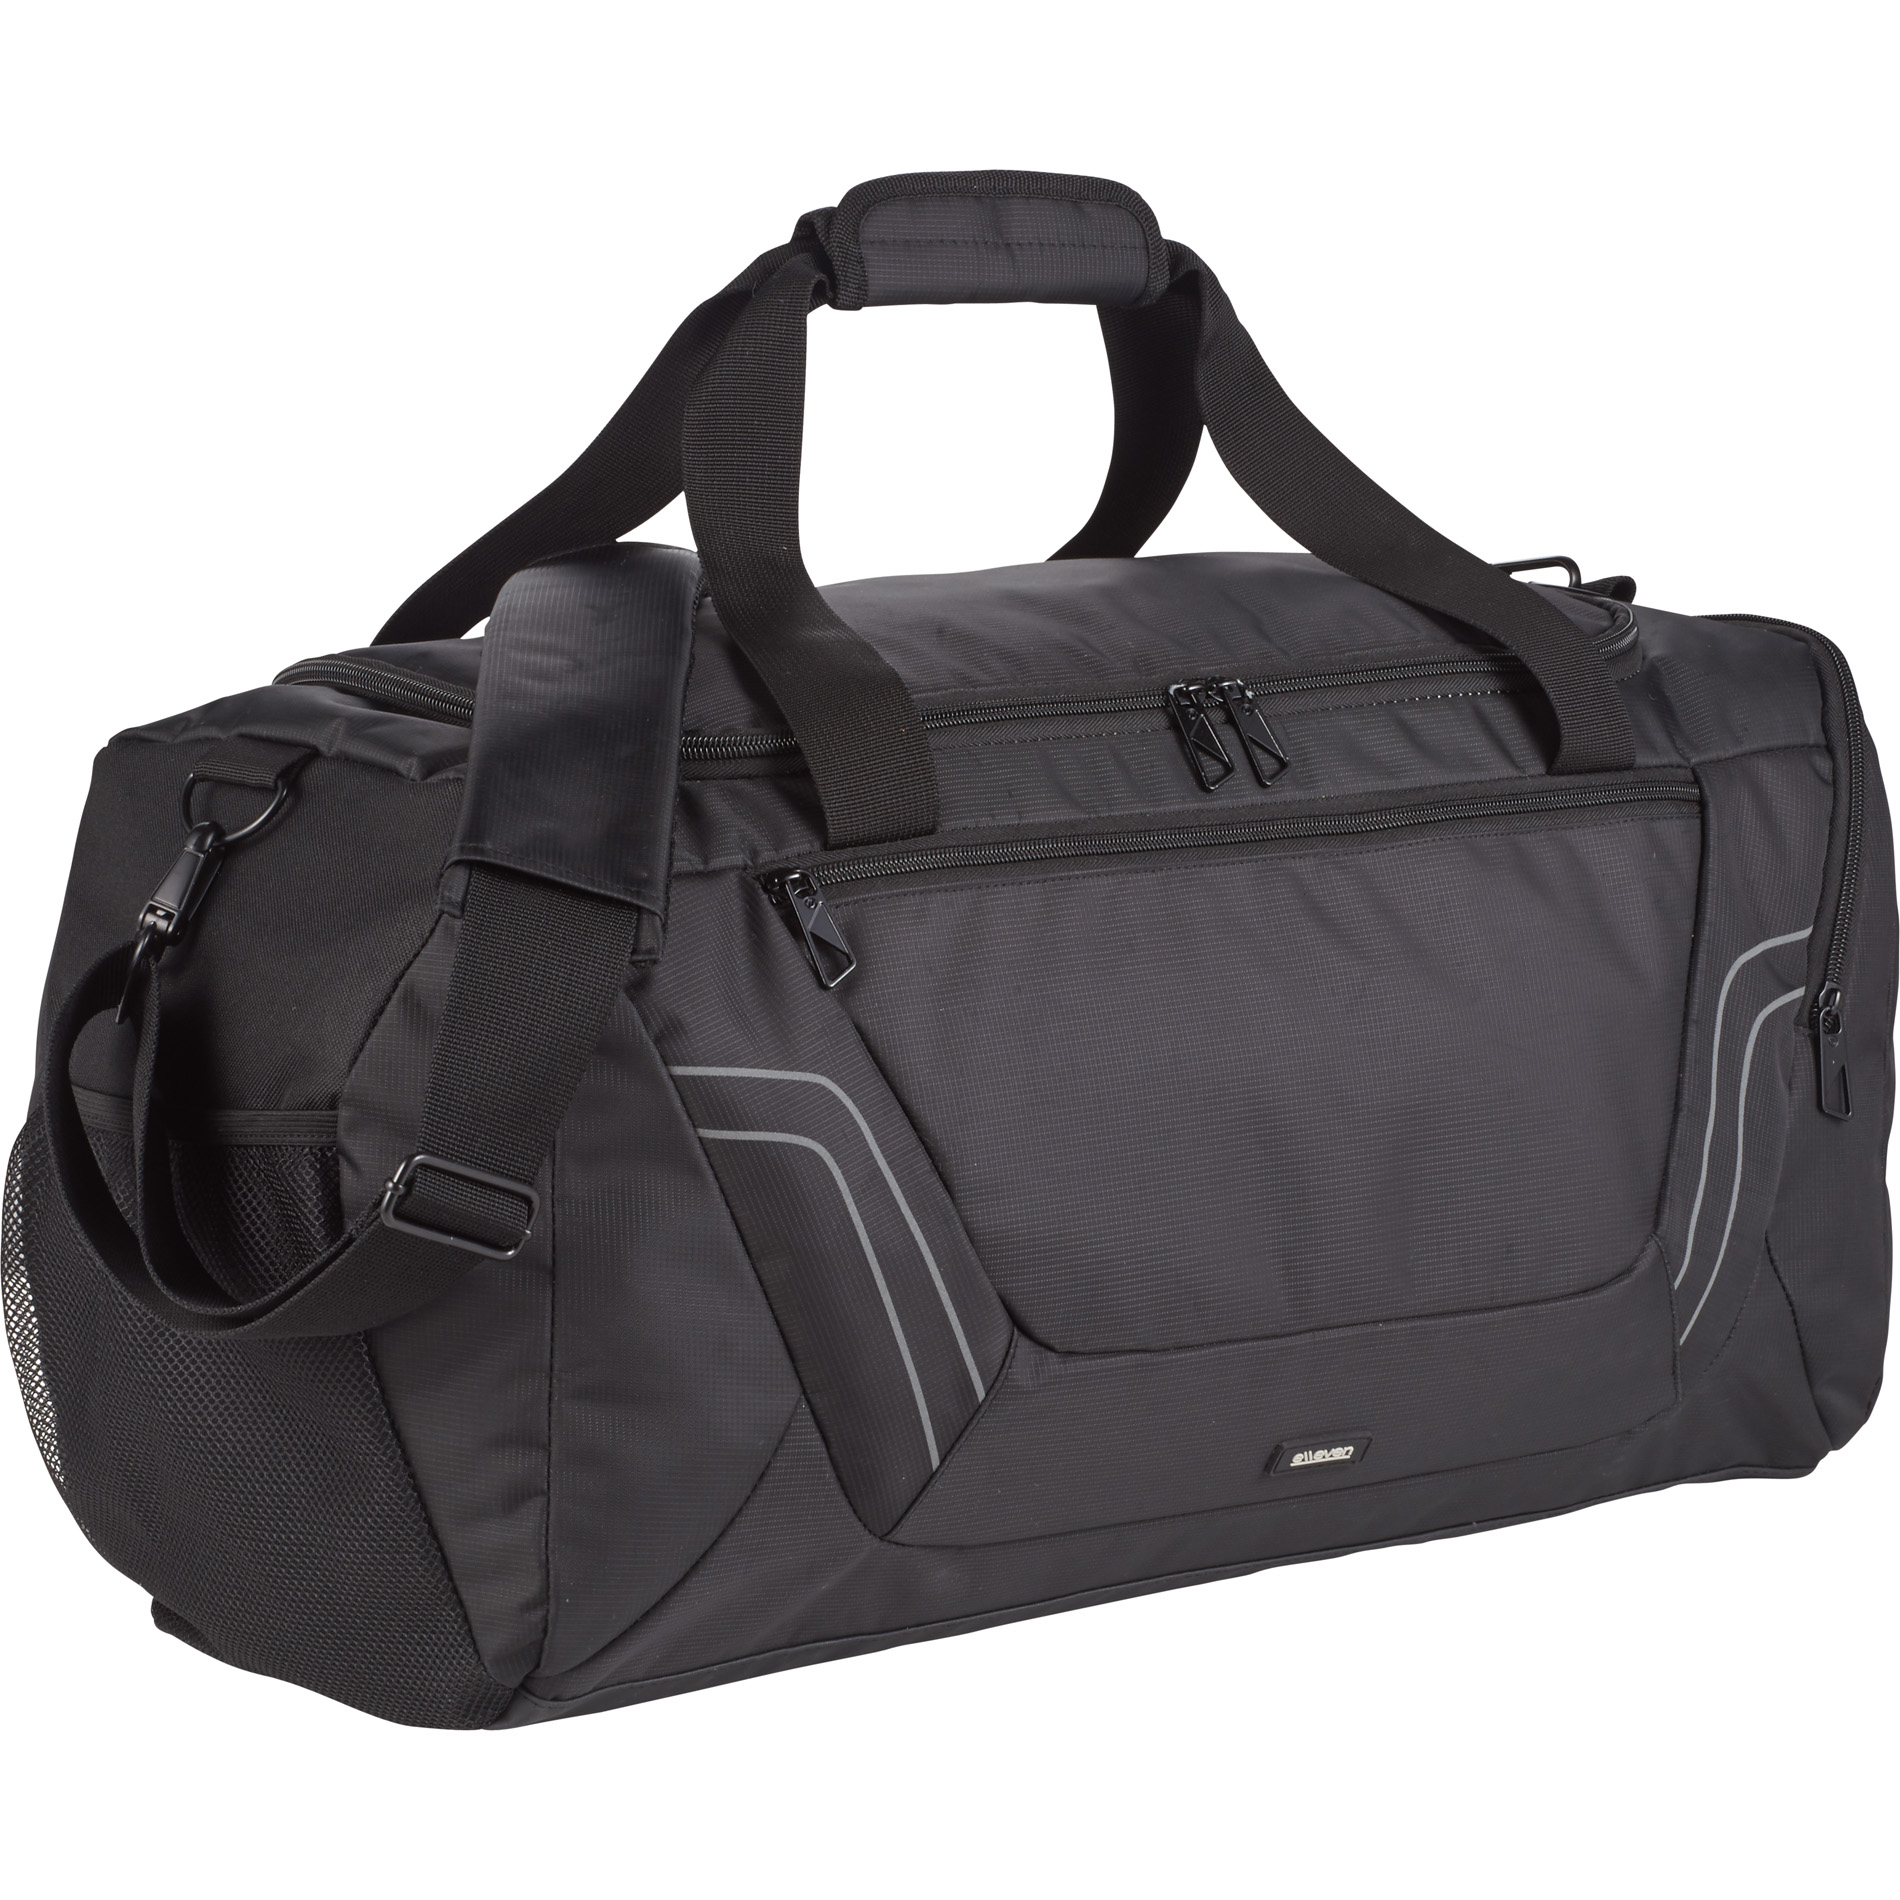 "elleven 0011-69 - Arc 21"" Travel Duffel"